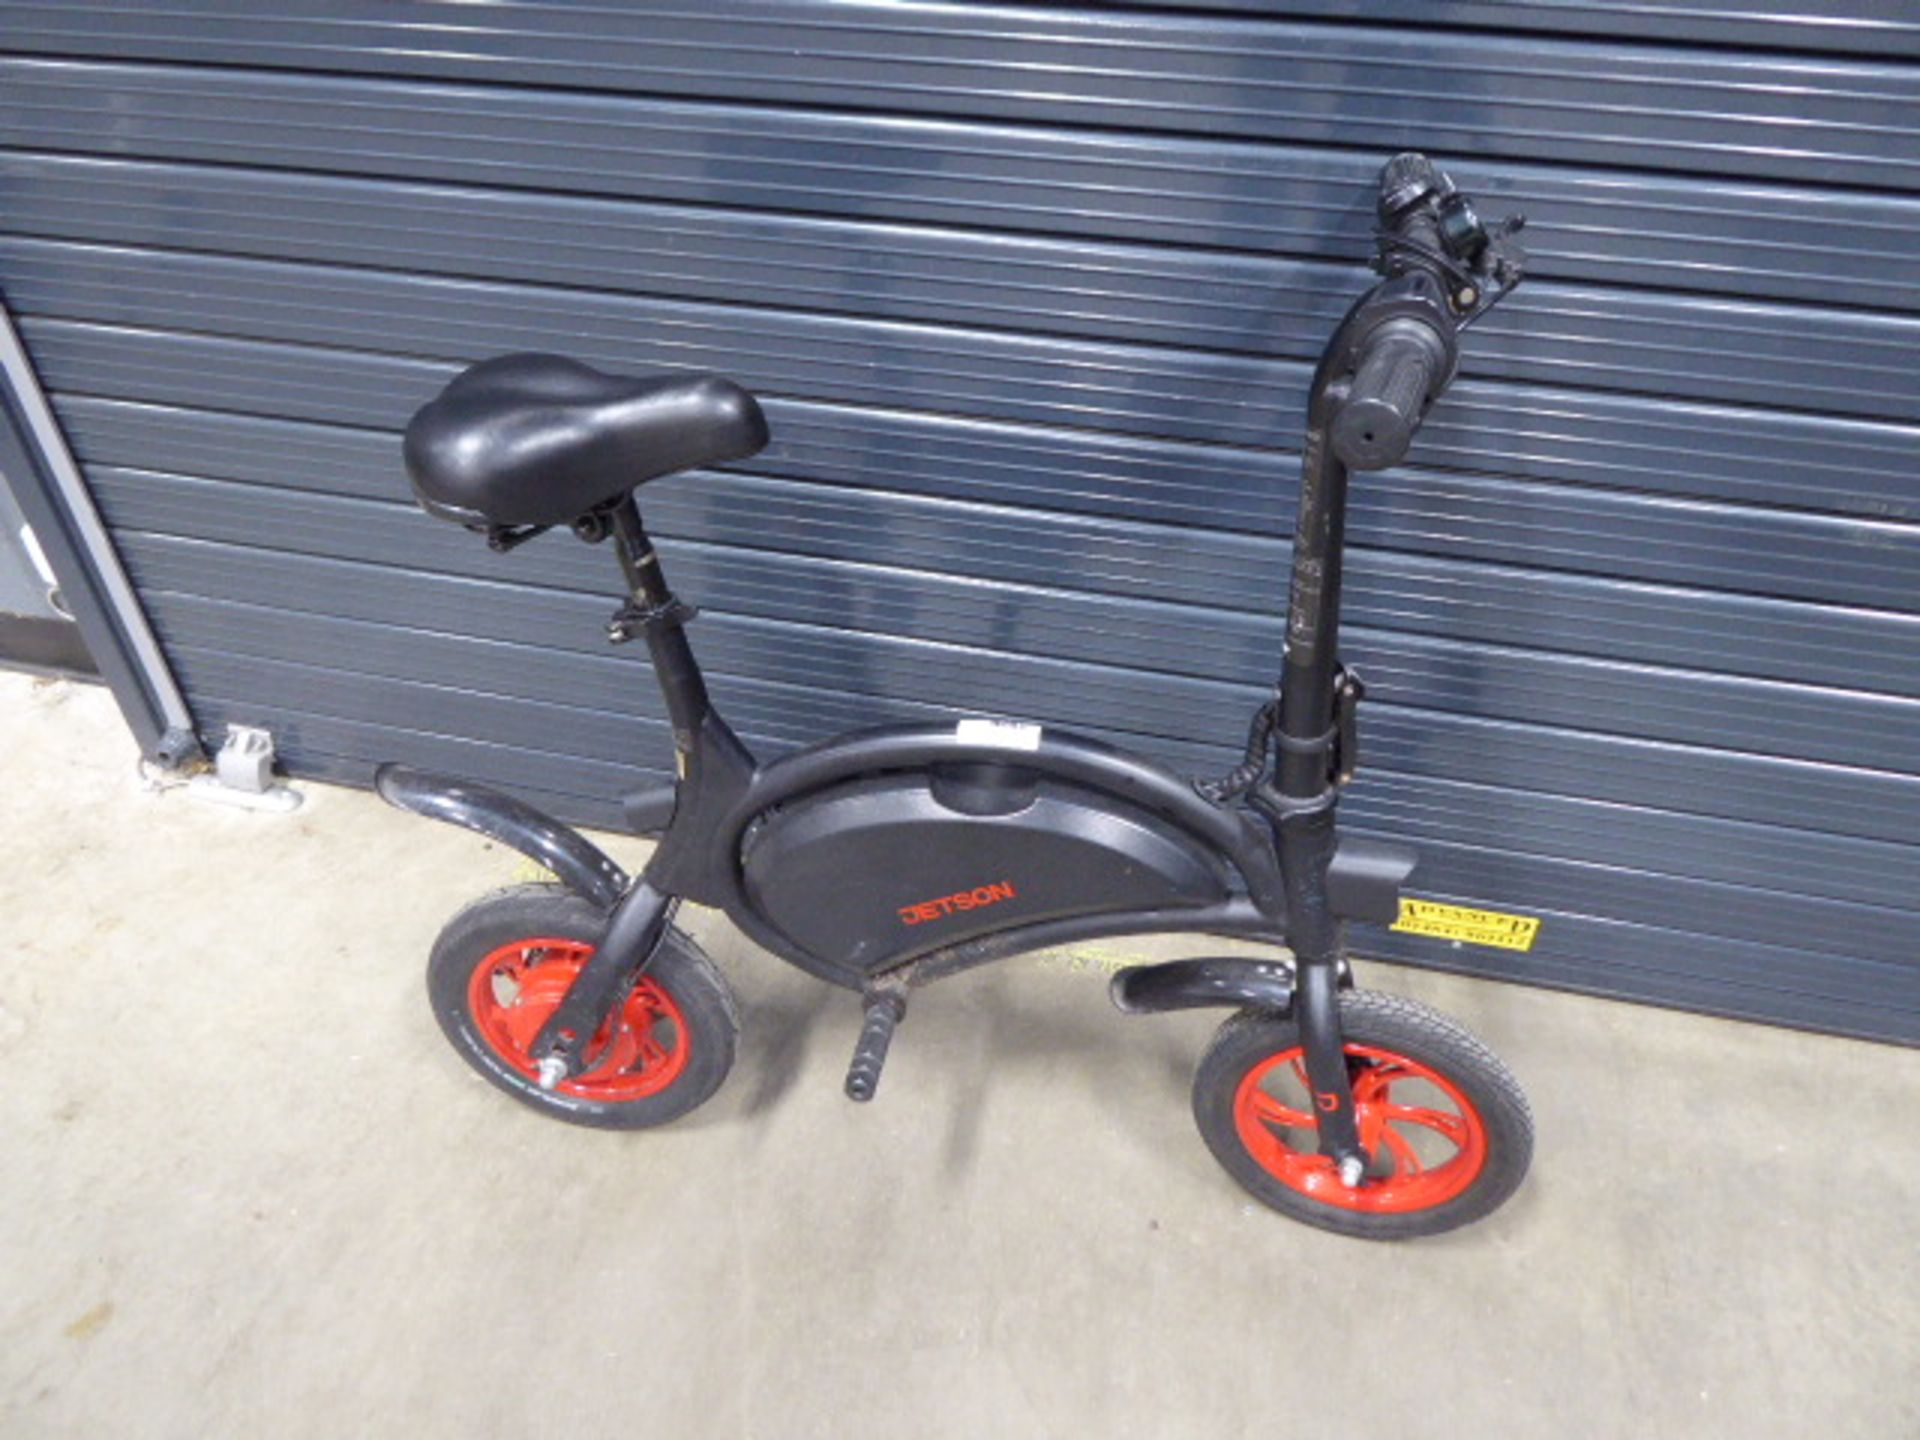 Jetson 2 wheel electric scooter bike (no charger) - Image 2 of 2